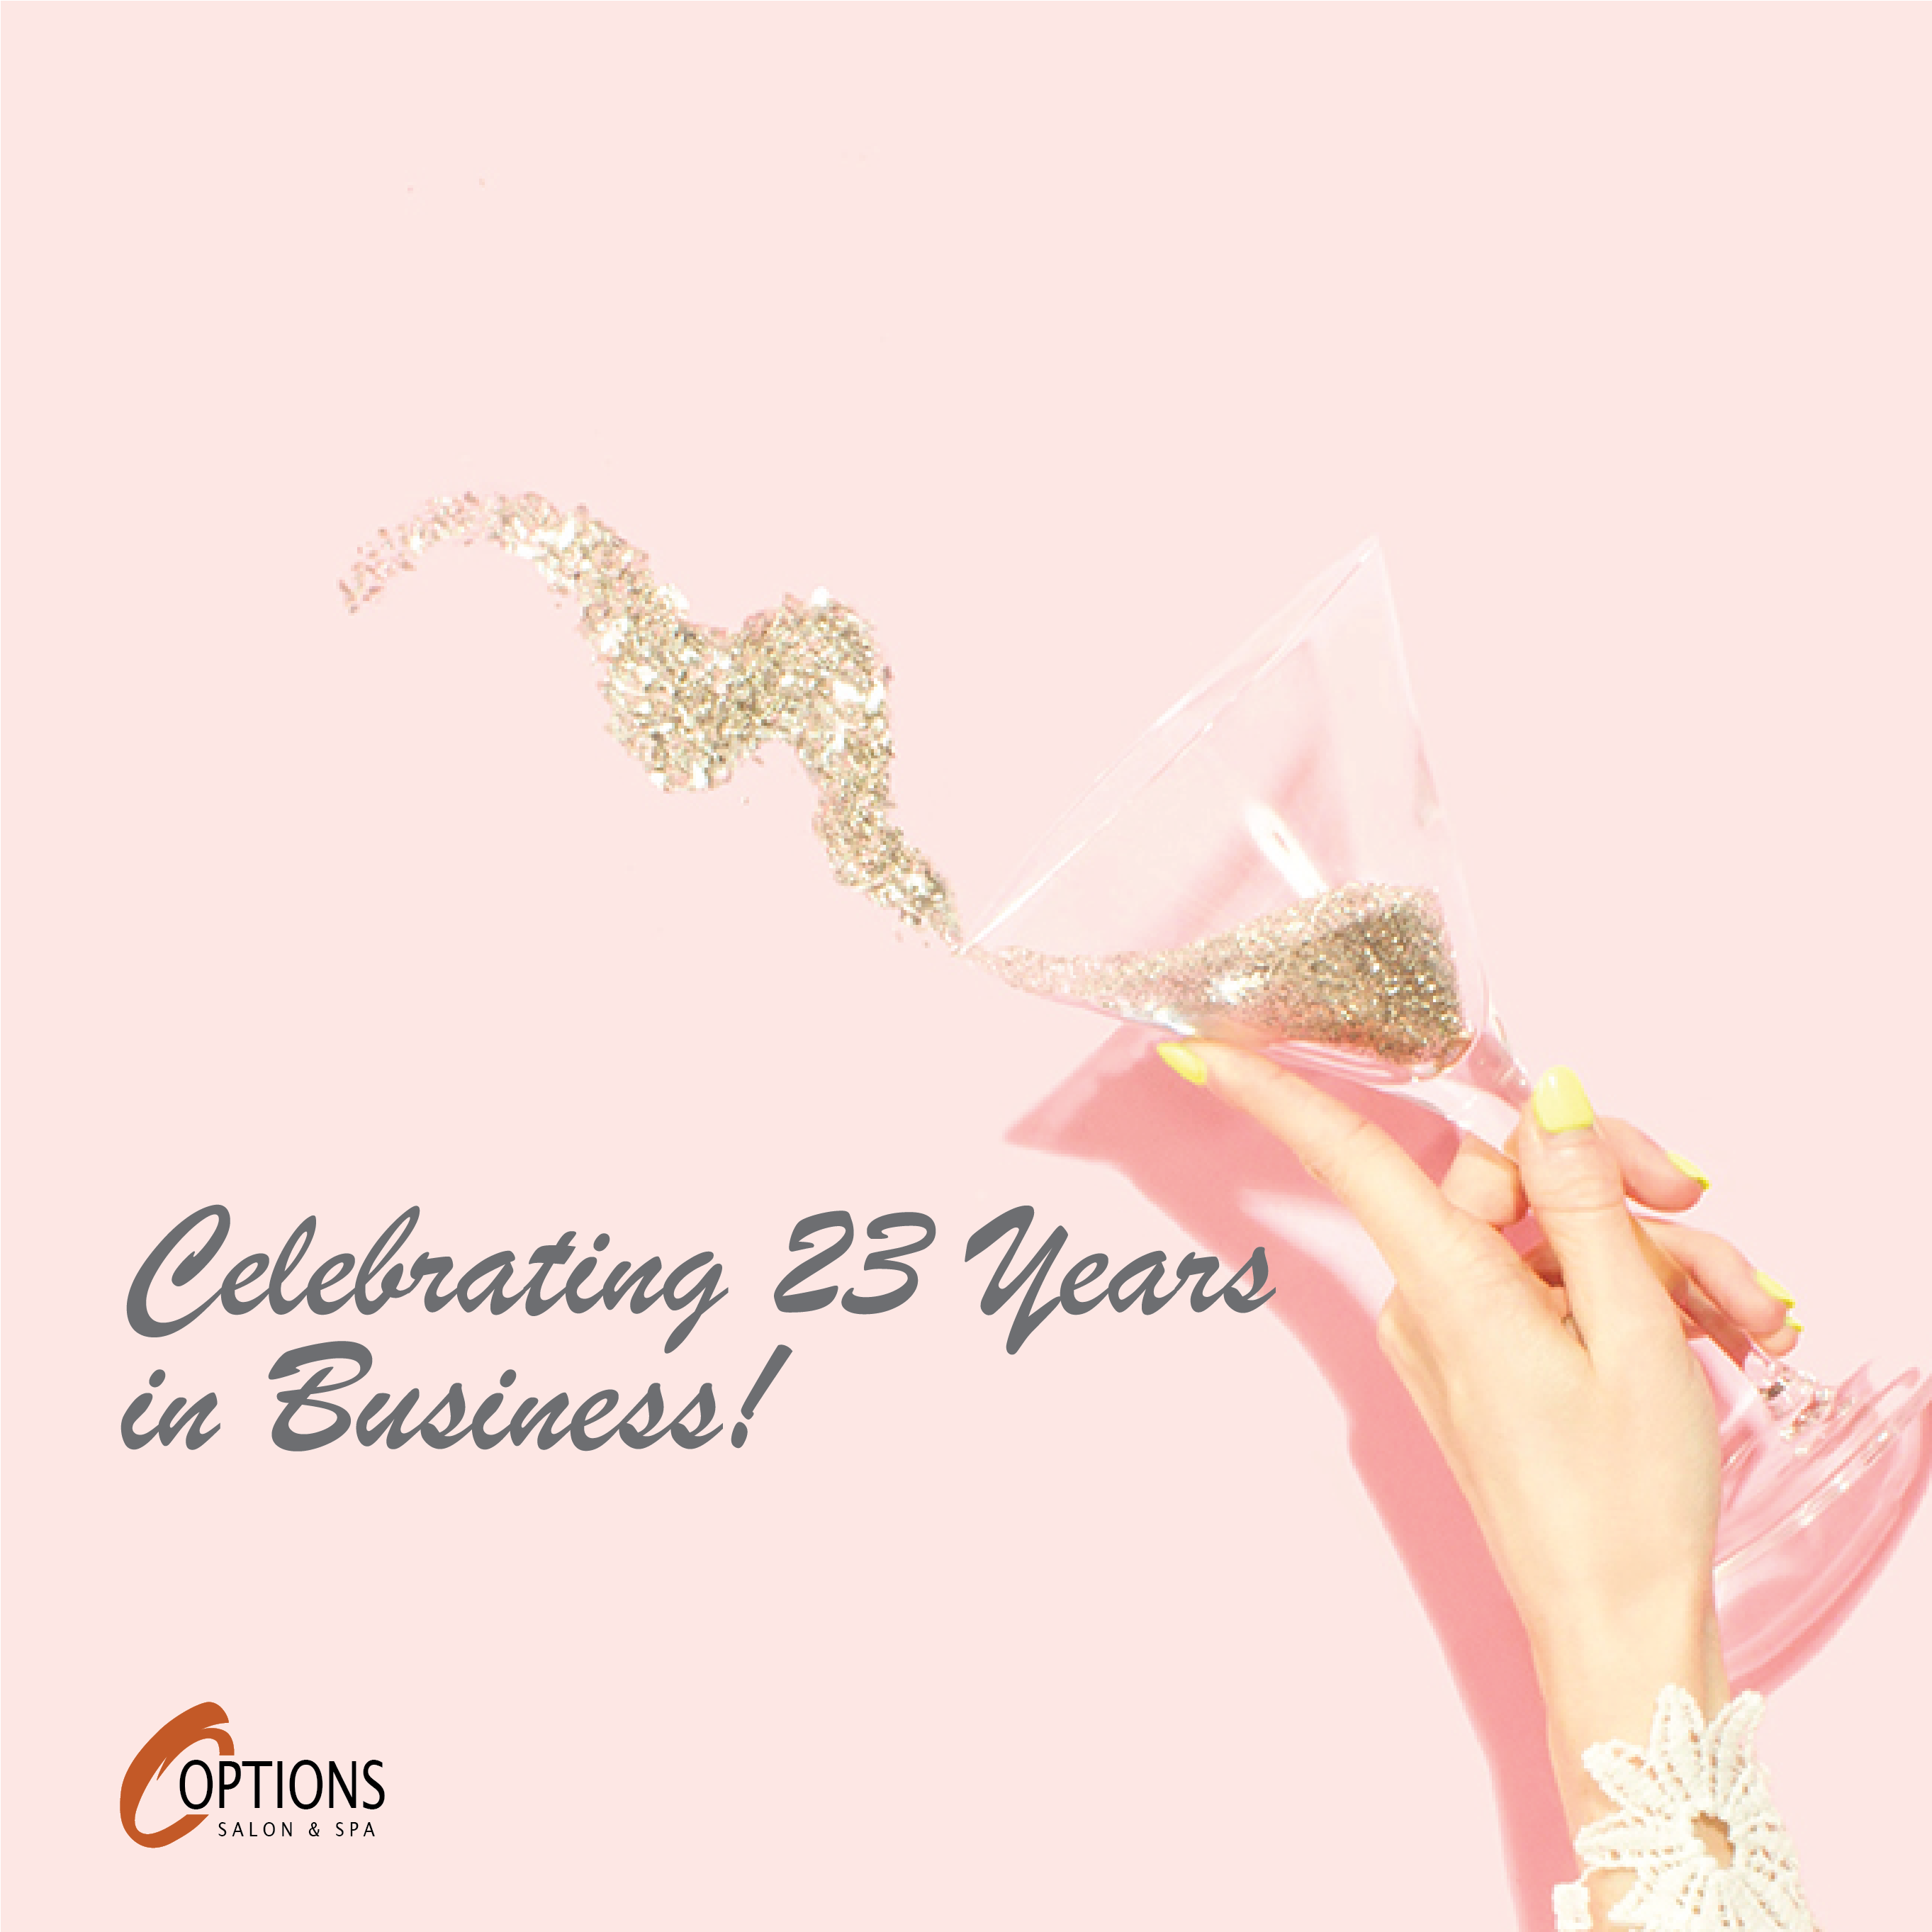 Celebrating 23 years in business.